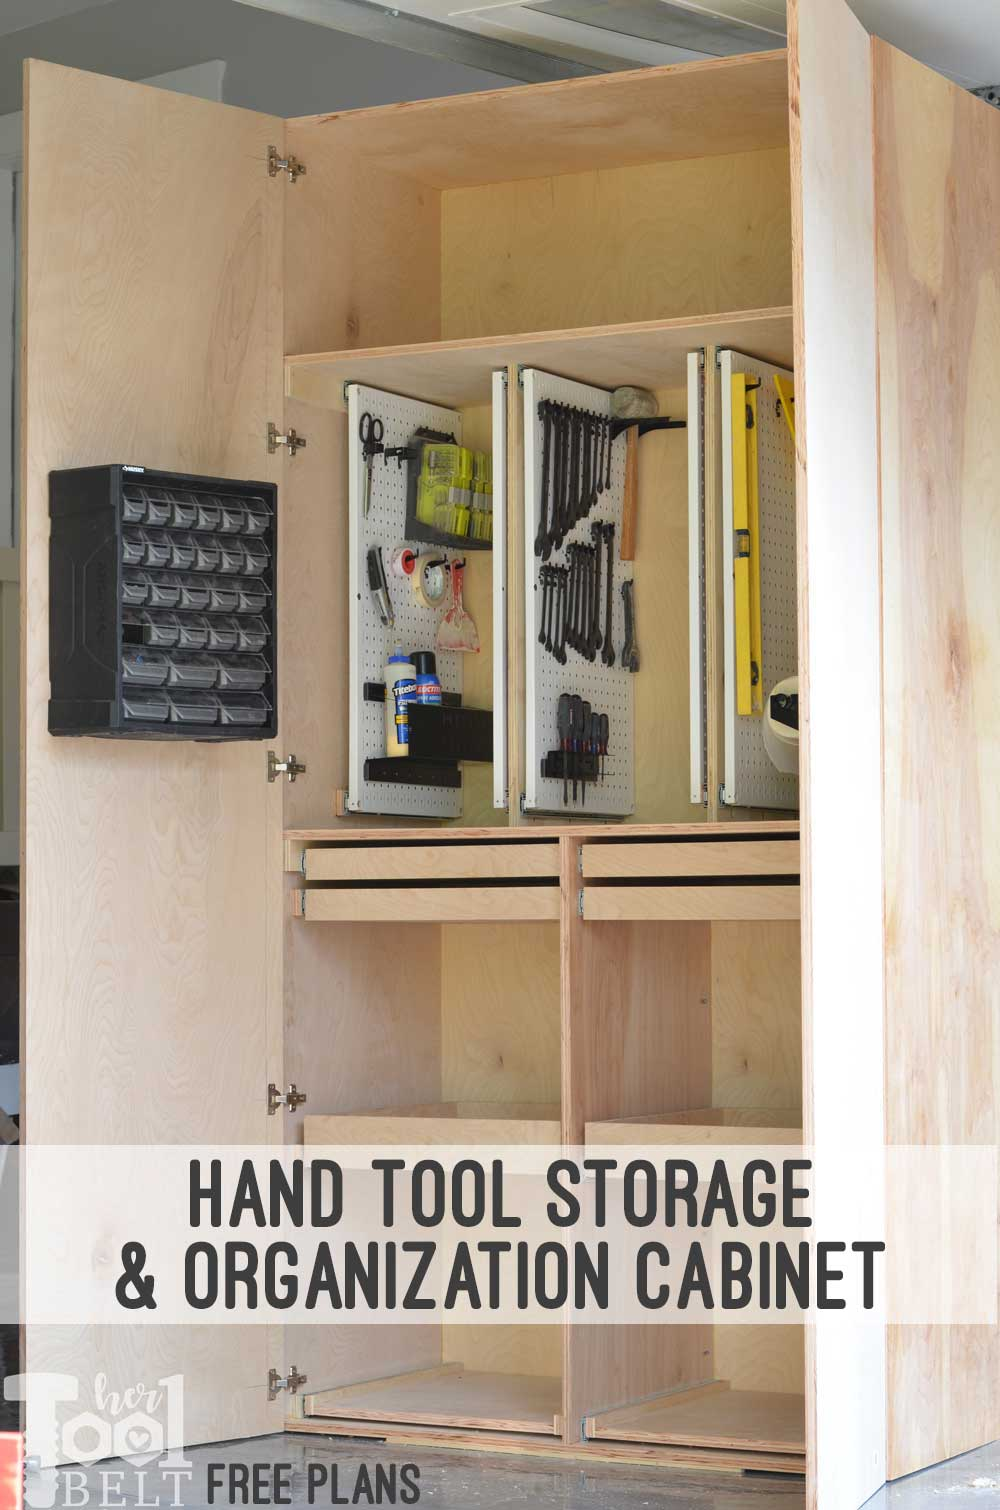 Garage Hand Tool Storage Cabinet Plans - Her Tool Belt on kitchen cabinet drawing plans, homemade open shelf cabinet, basic cabinet plans, homemade kitchen cabinate door plans, simple kitchen cabinet plans, homemade kitchen cabinets ideas, mission wood cabinet plans, build your own kitchen cabinet plans, homemade camp kitchen plans, diy kitchen island plans, kitchen cabinet construction plans, homemade kitchen cabinets how toos, kitchen hutch diy plans, kitchen cabinet woodworking plans, unusual corner kitchen cabinets plans, homemade china cabinets,